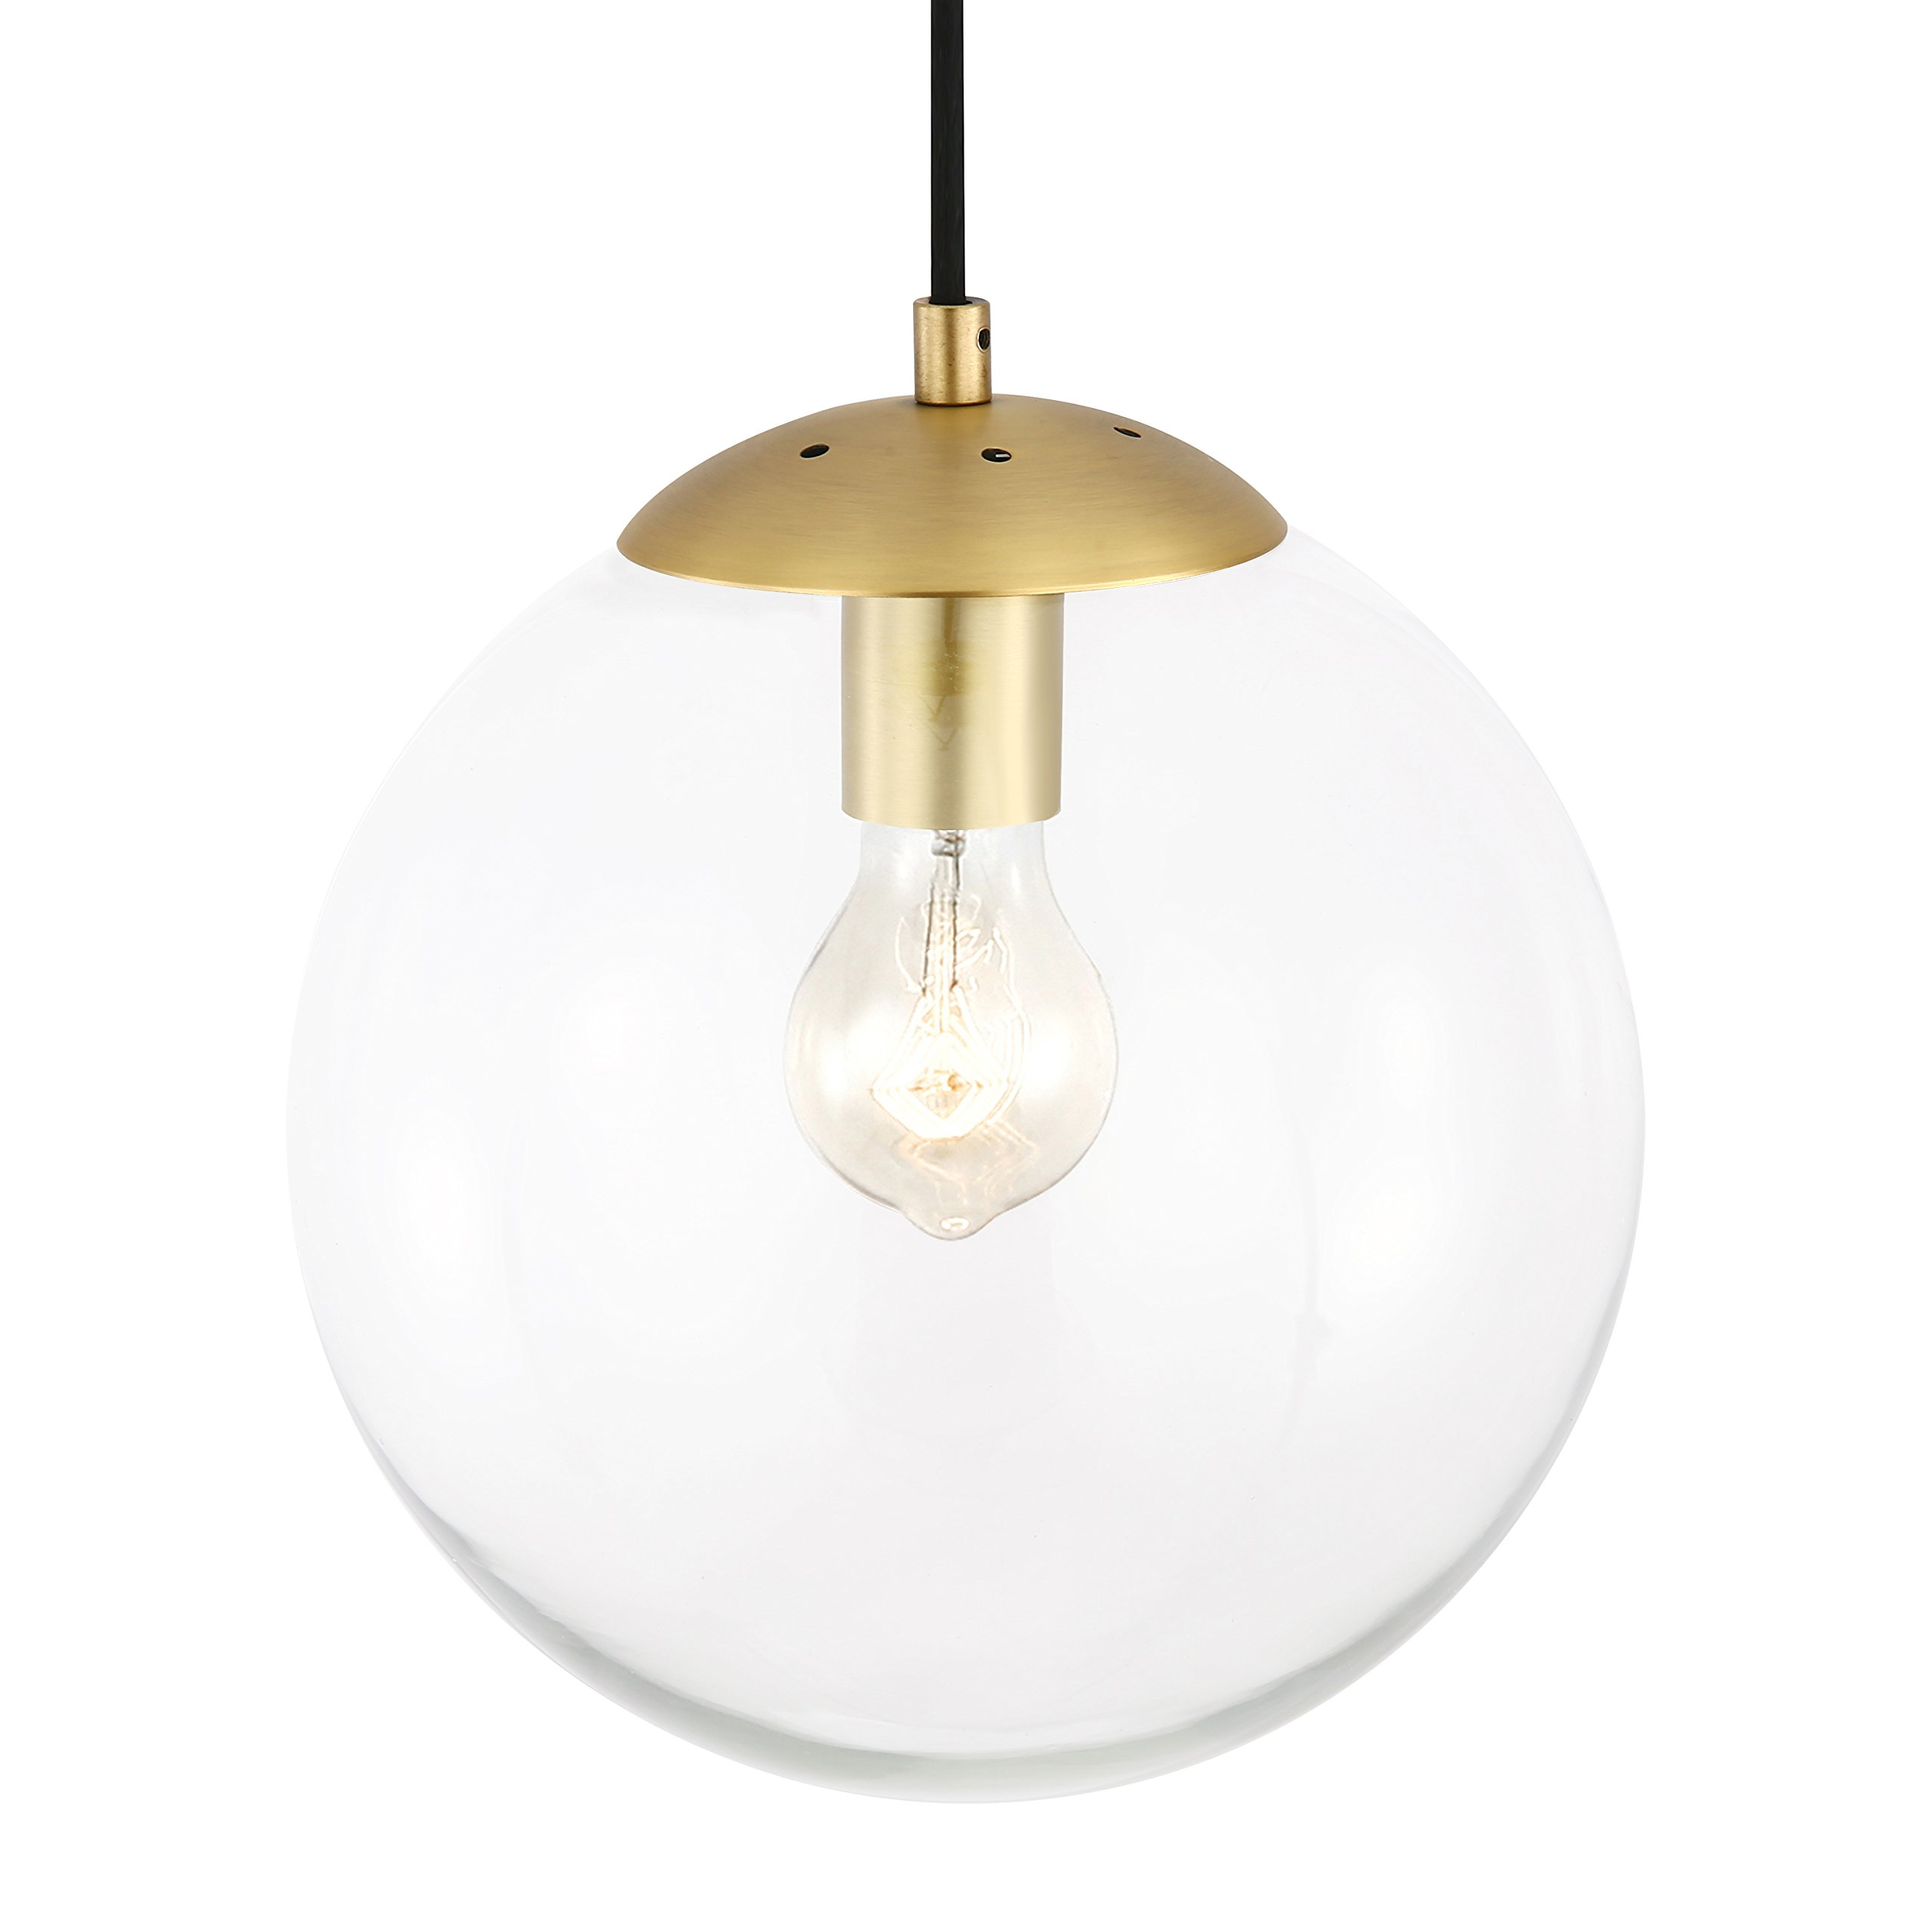 Light Society Tesler Globe Pendant, Clear Glass with Brass Finish, Contemporary Mid Century Modern Style Lighting Fixture (LS-C175-BRS-CLR)